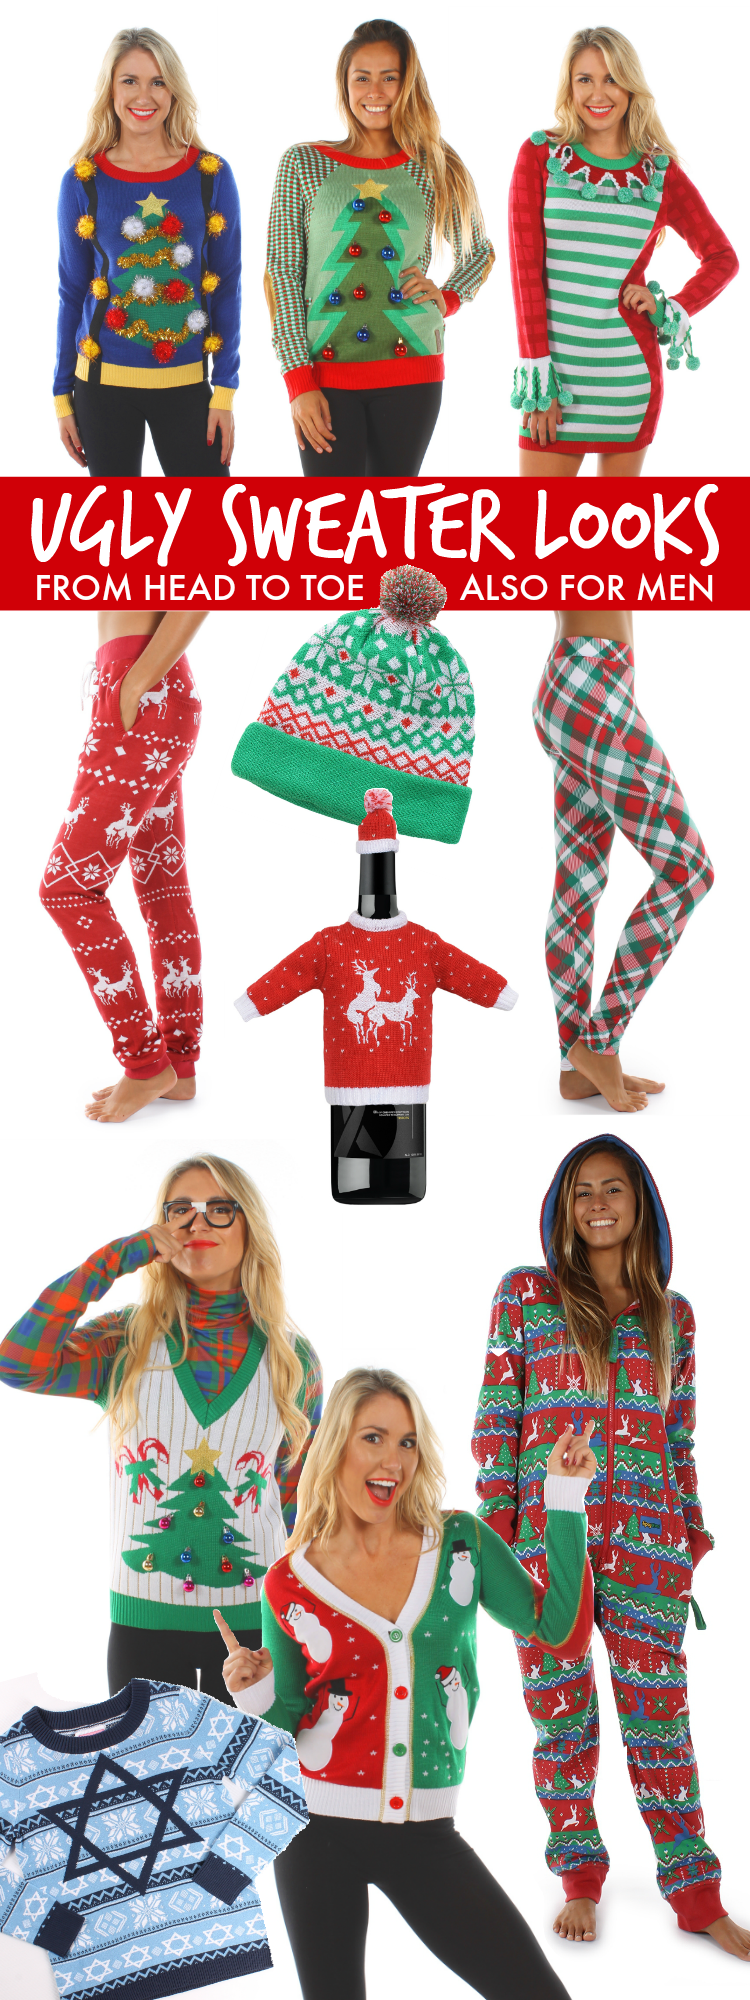 be hot hip and hilarious with these ugly christmas sweater party looks from head to - Hilarious Ugly Christmas Sweaters